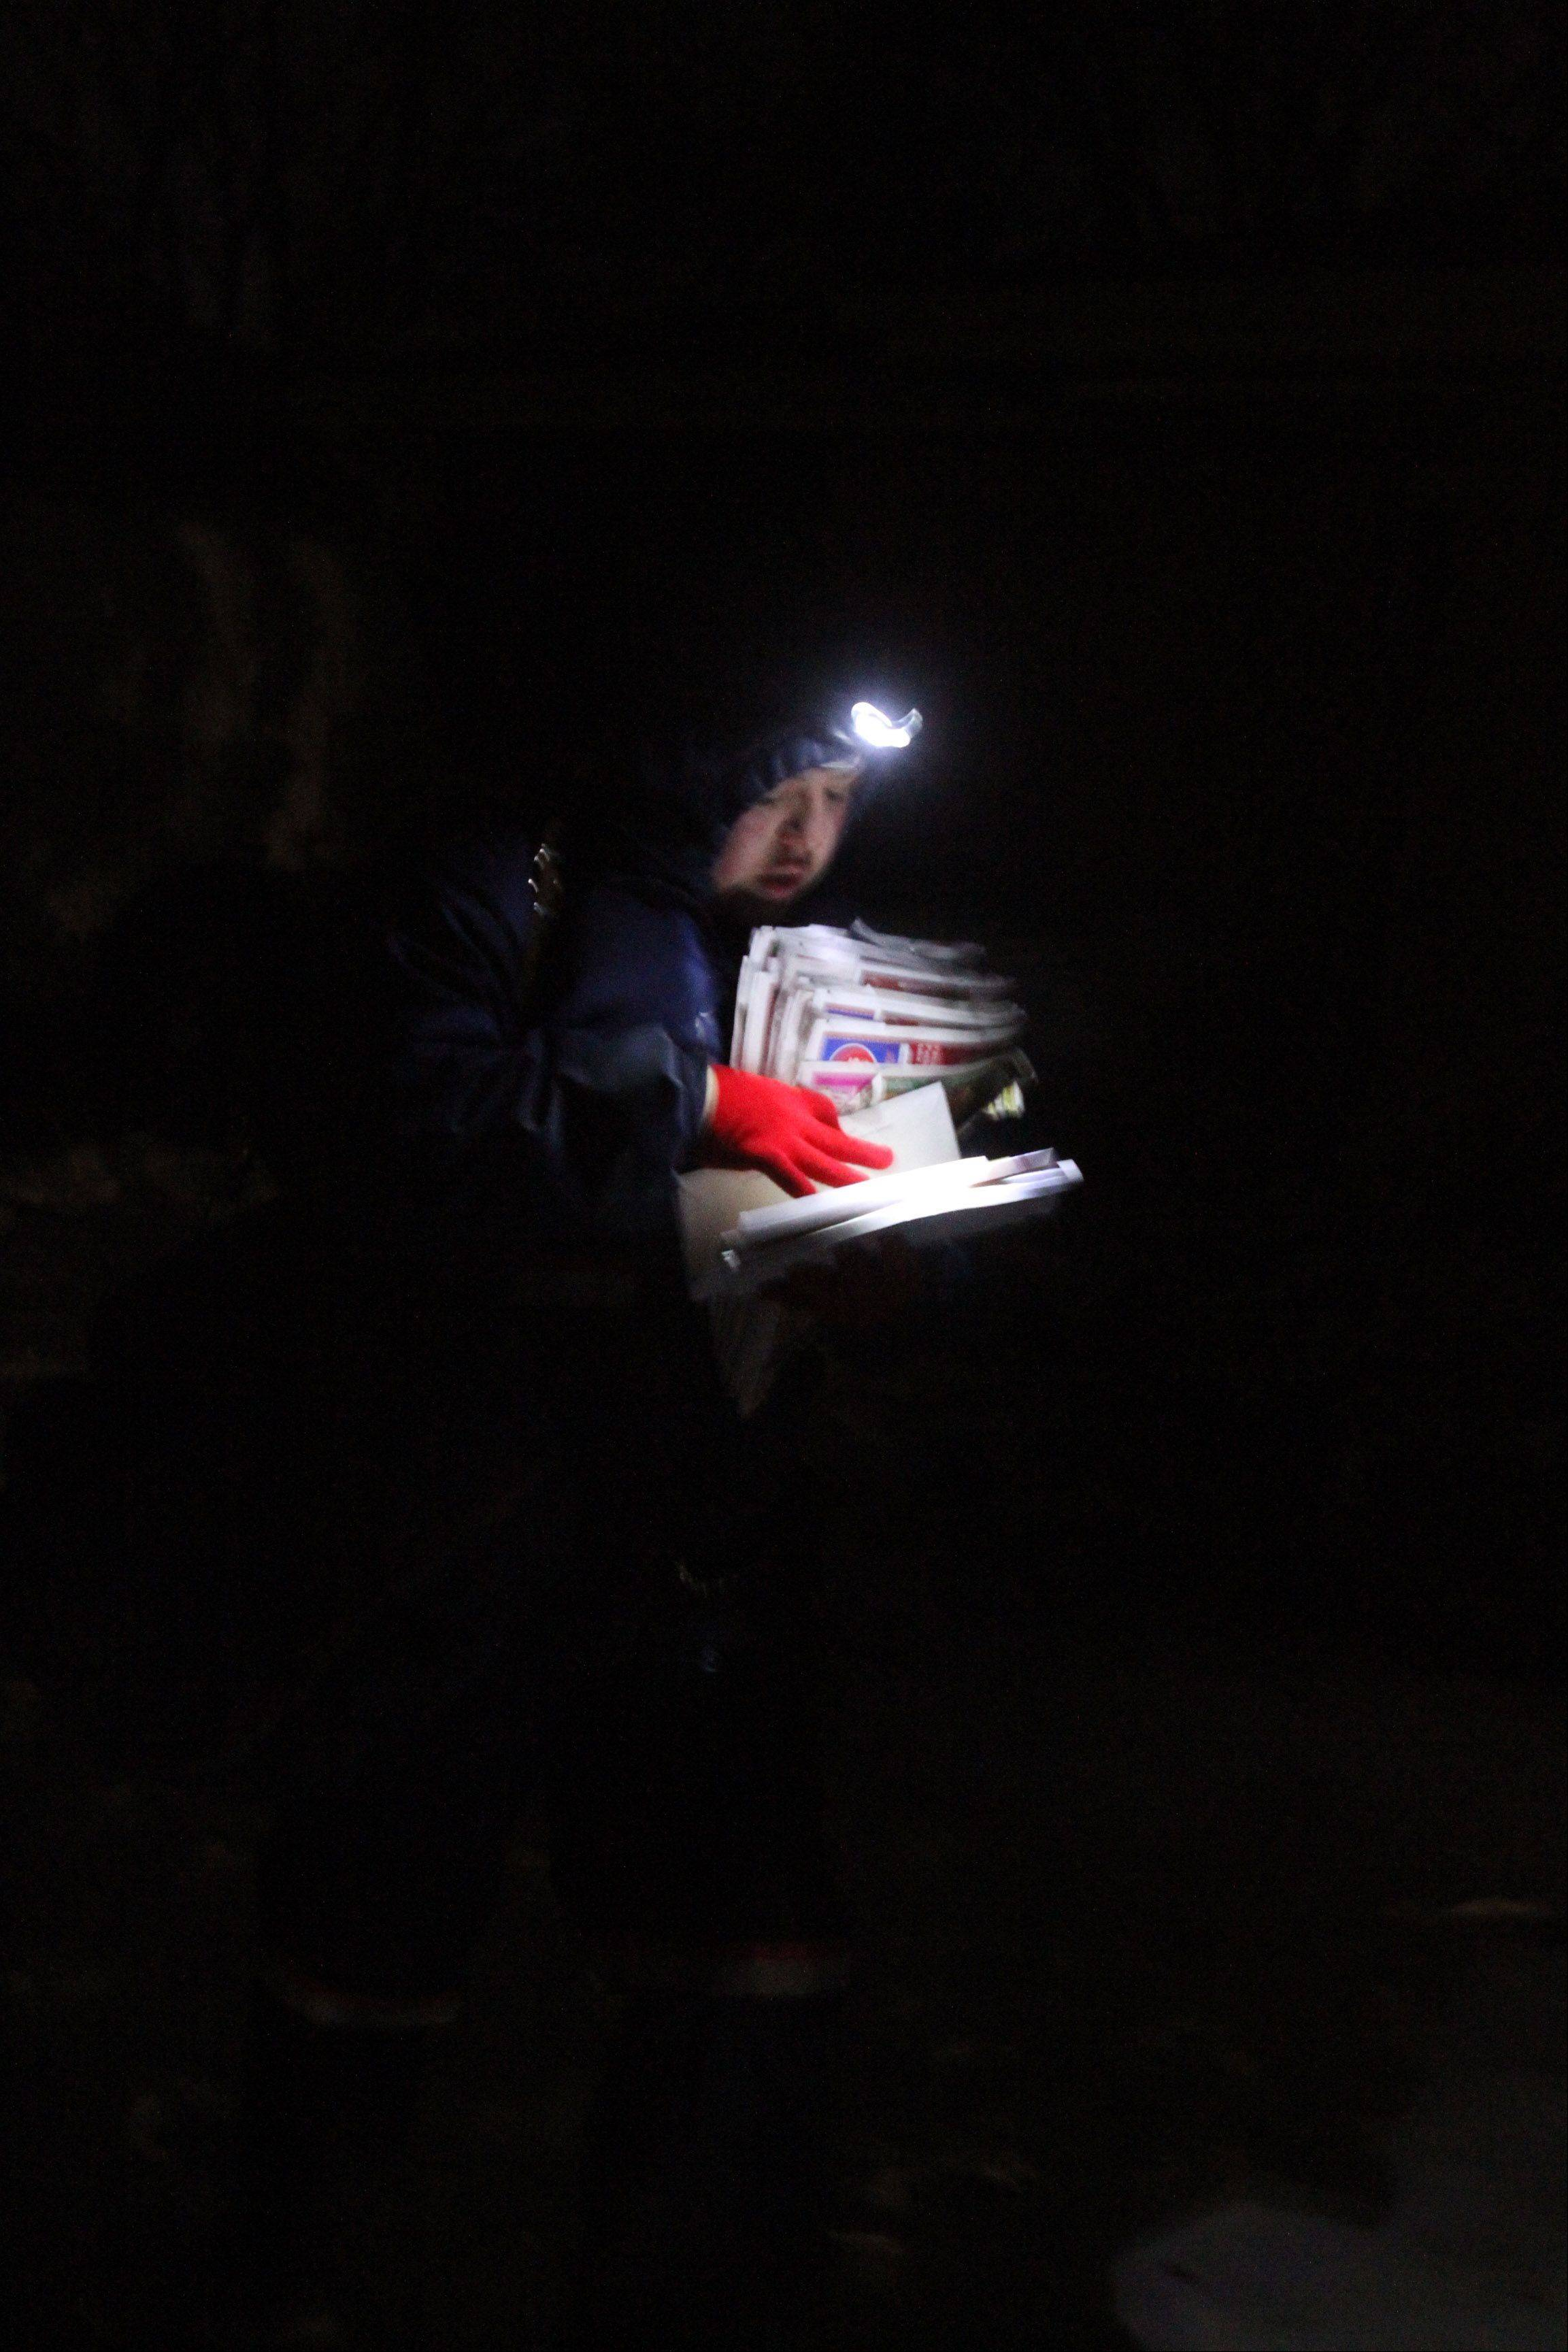 Mount Prospect postal carrier Lidia Garcia looks at addresses using a headlamp as she delivers mail to homes just southeast of the Mount Prospect Post Office between 5 and 6 p.m. on a winter day.